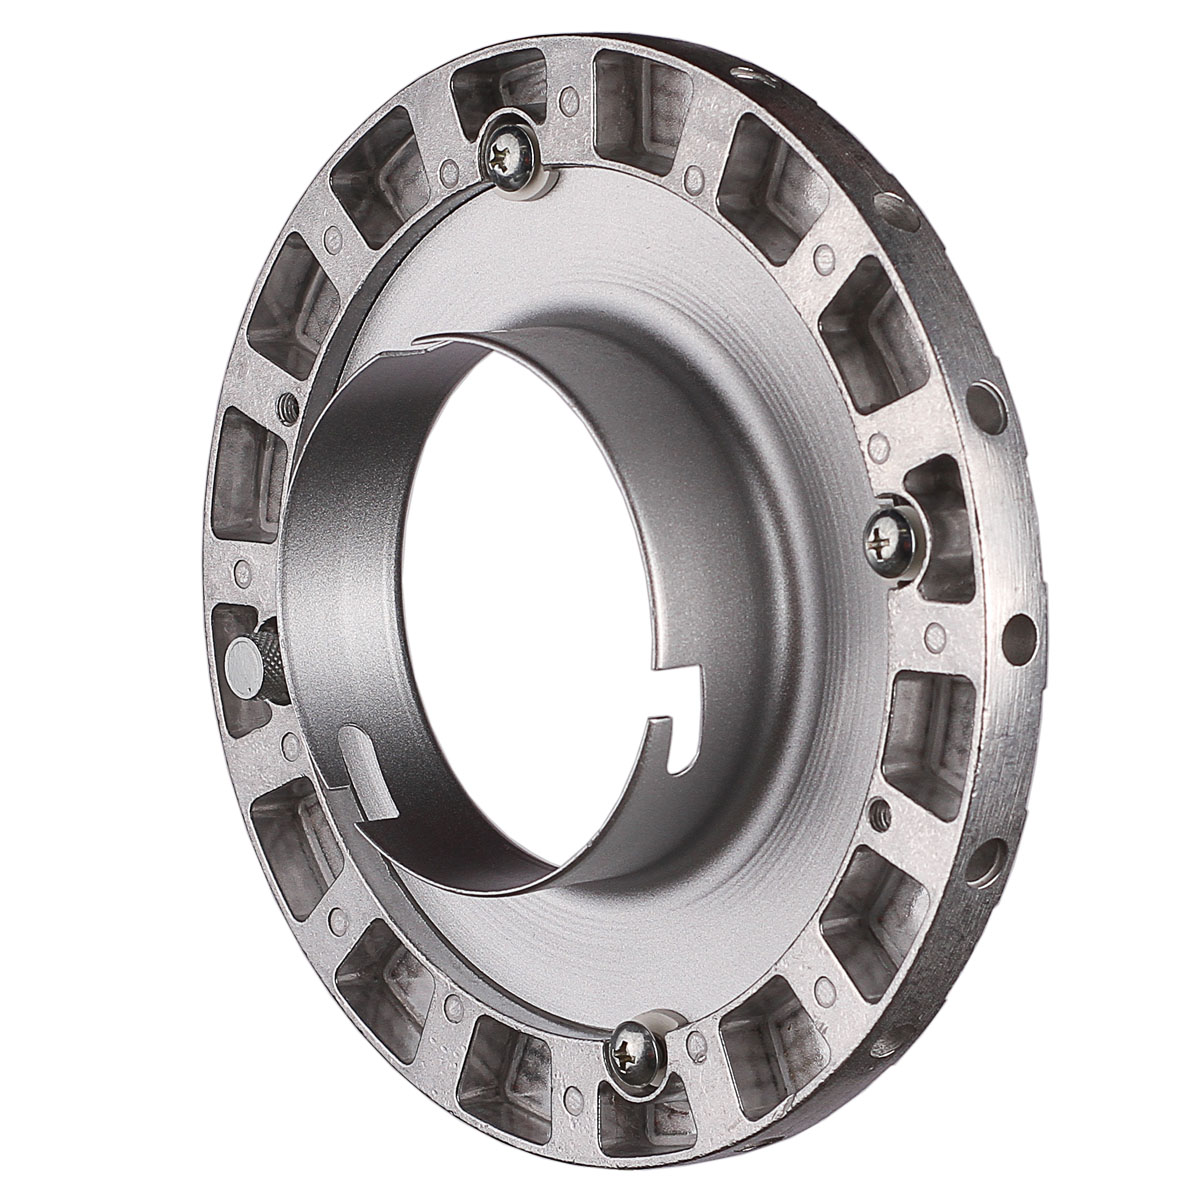 Phottix Speed Ring For Comet (144mm, 16-Hole)